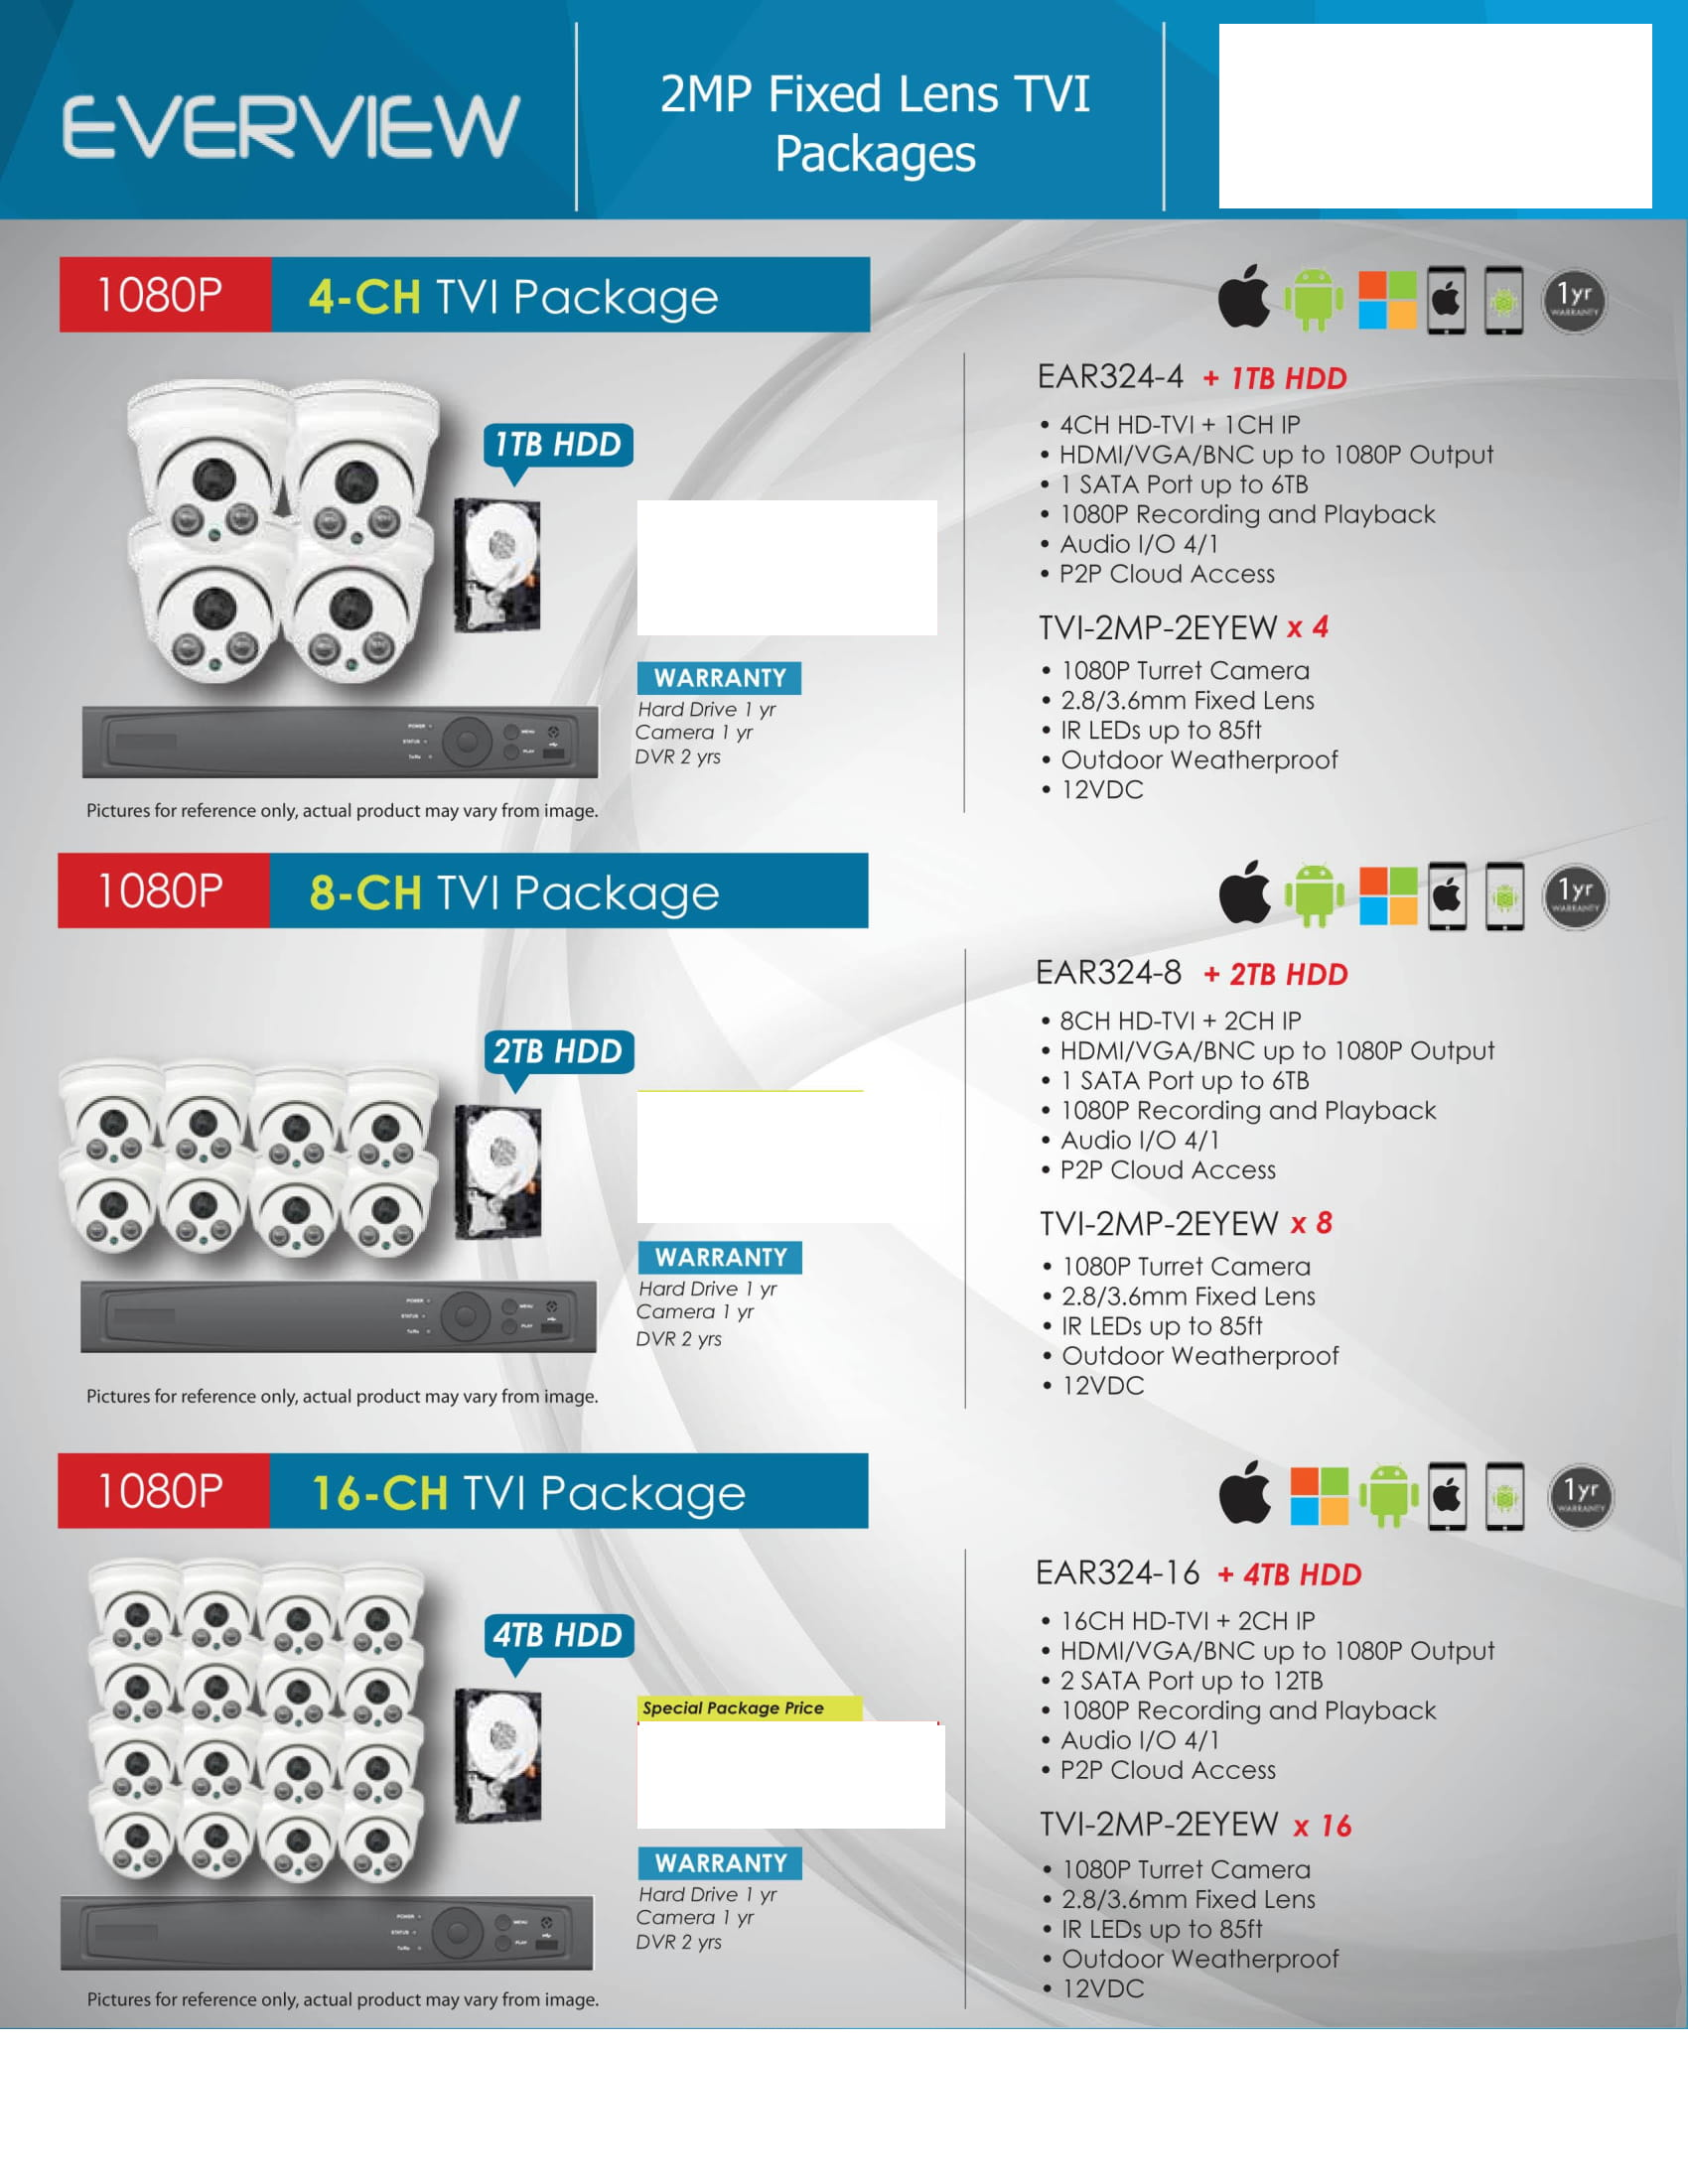 Everview_-Packages-_No-Price-2 HD Camera Packages Full Promotion Price - Compare & Shop